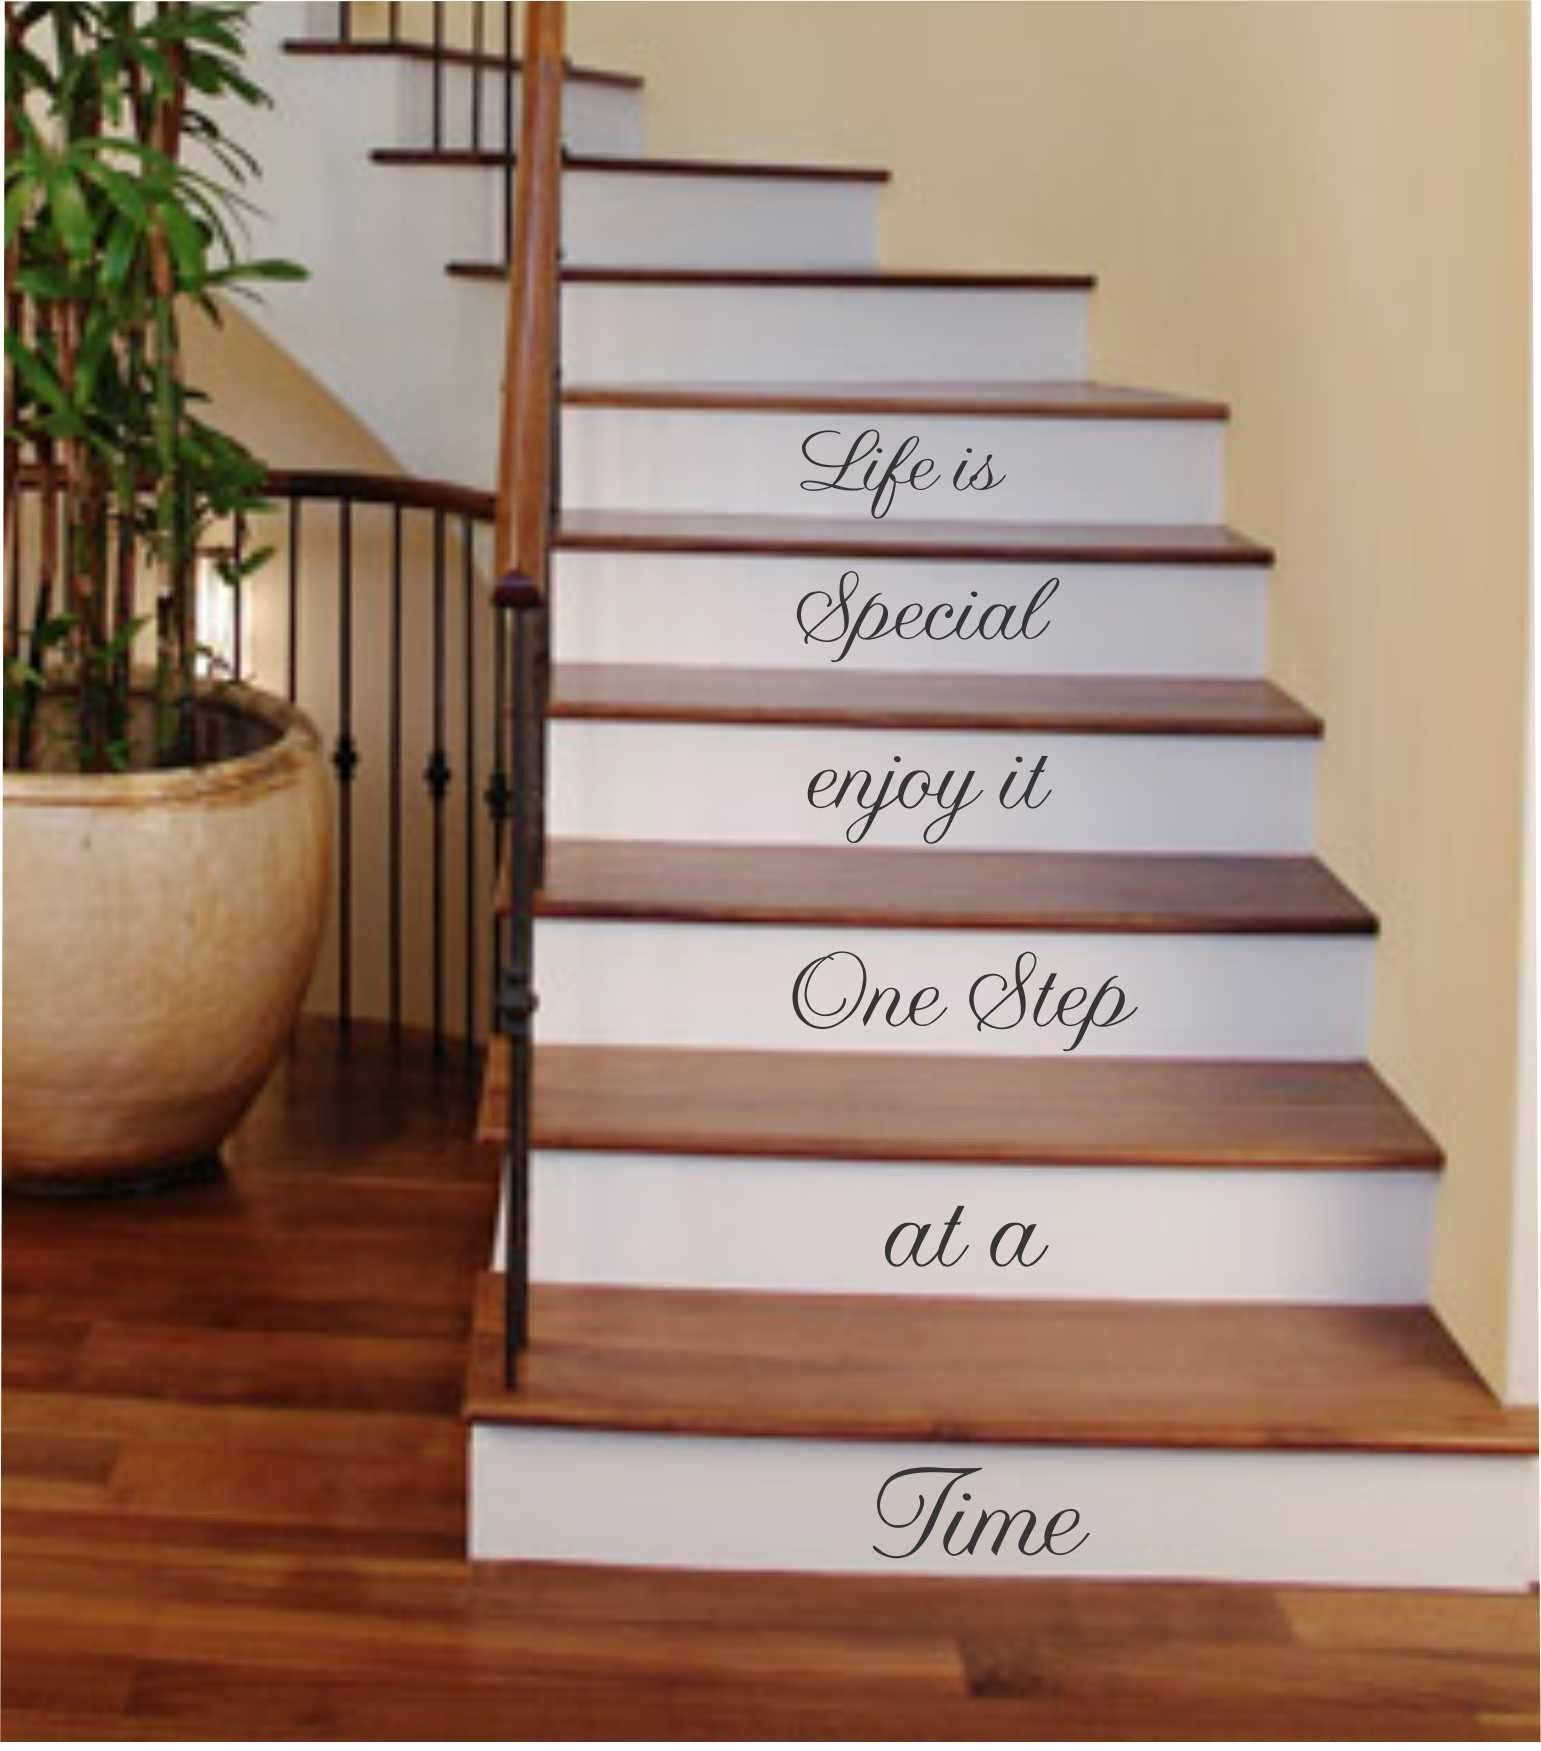 e Step at a Time Vinyl Stairs Decal